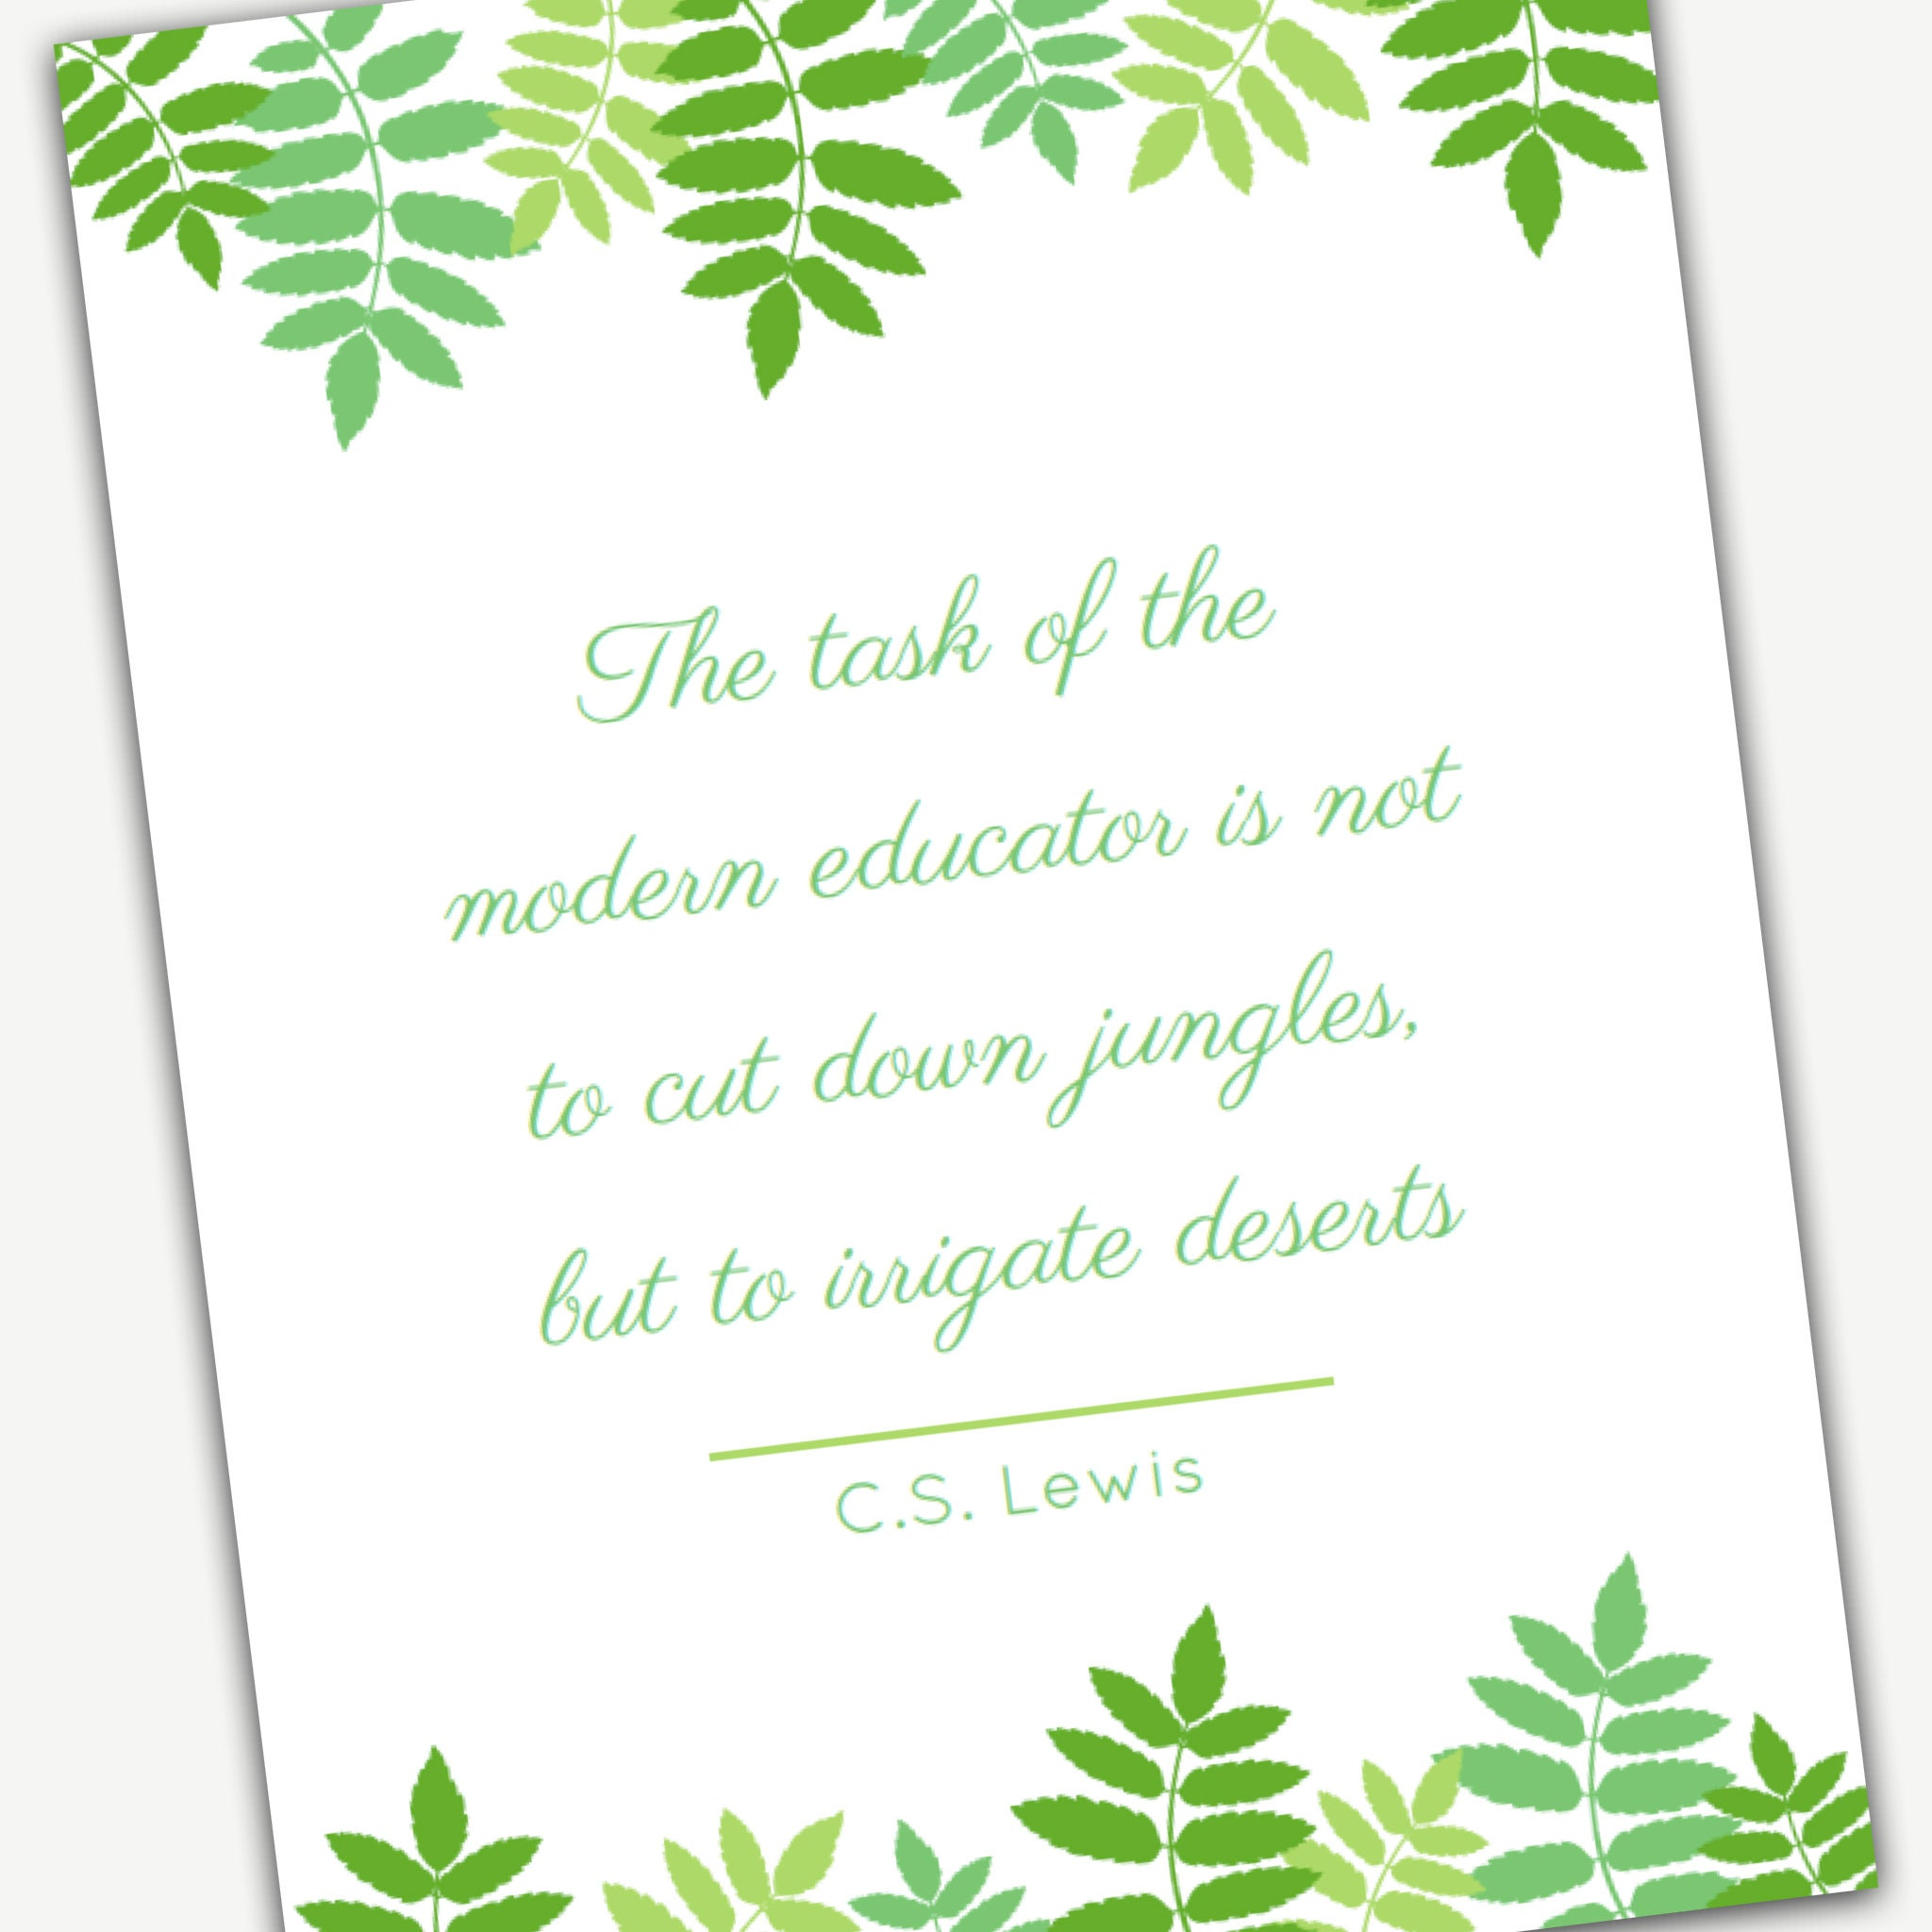 image relating to Printable Teacher Quotes titled CS Lewis Instructor Quotation Wall Artwork Printable, excellent Trainer Appreciation Reward or reward towards the cl